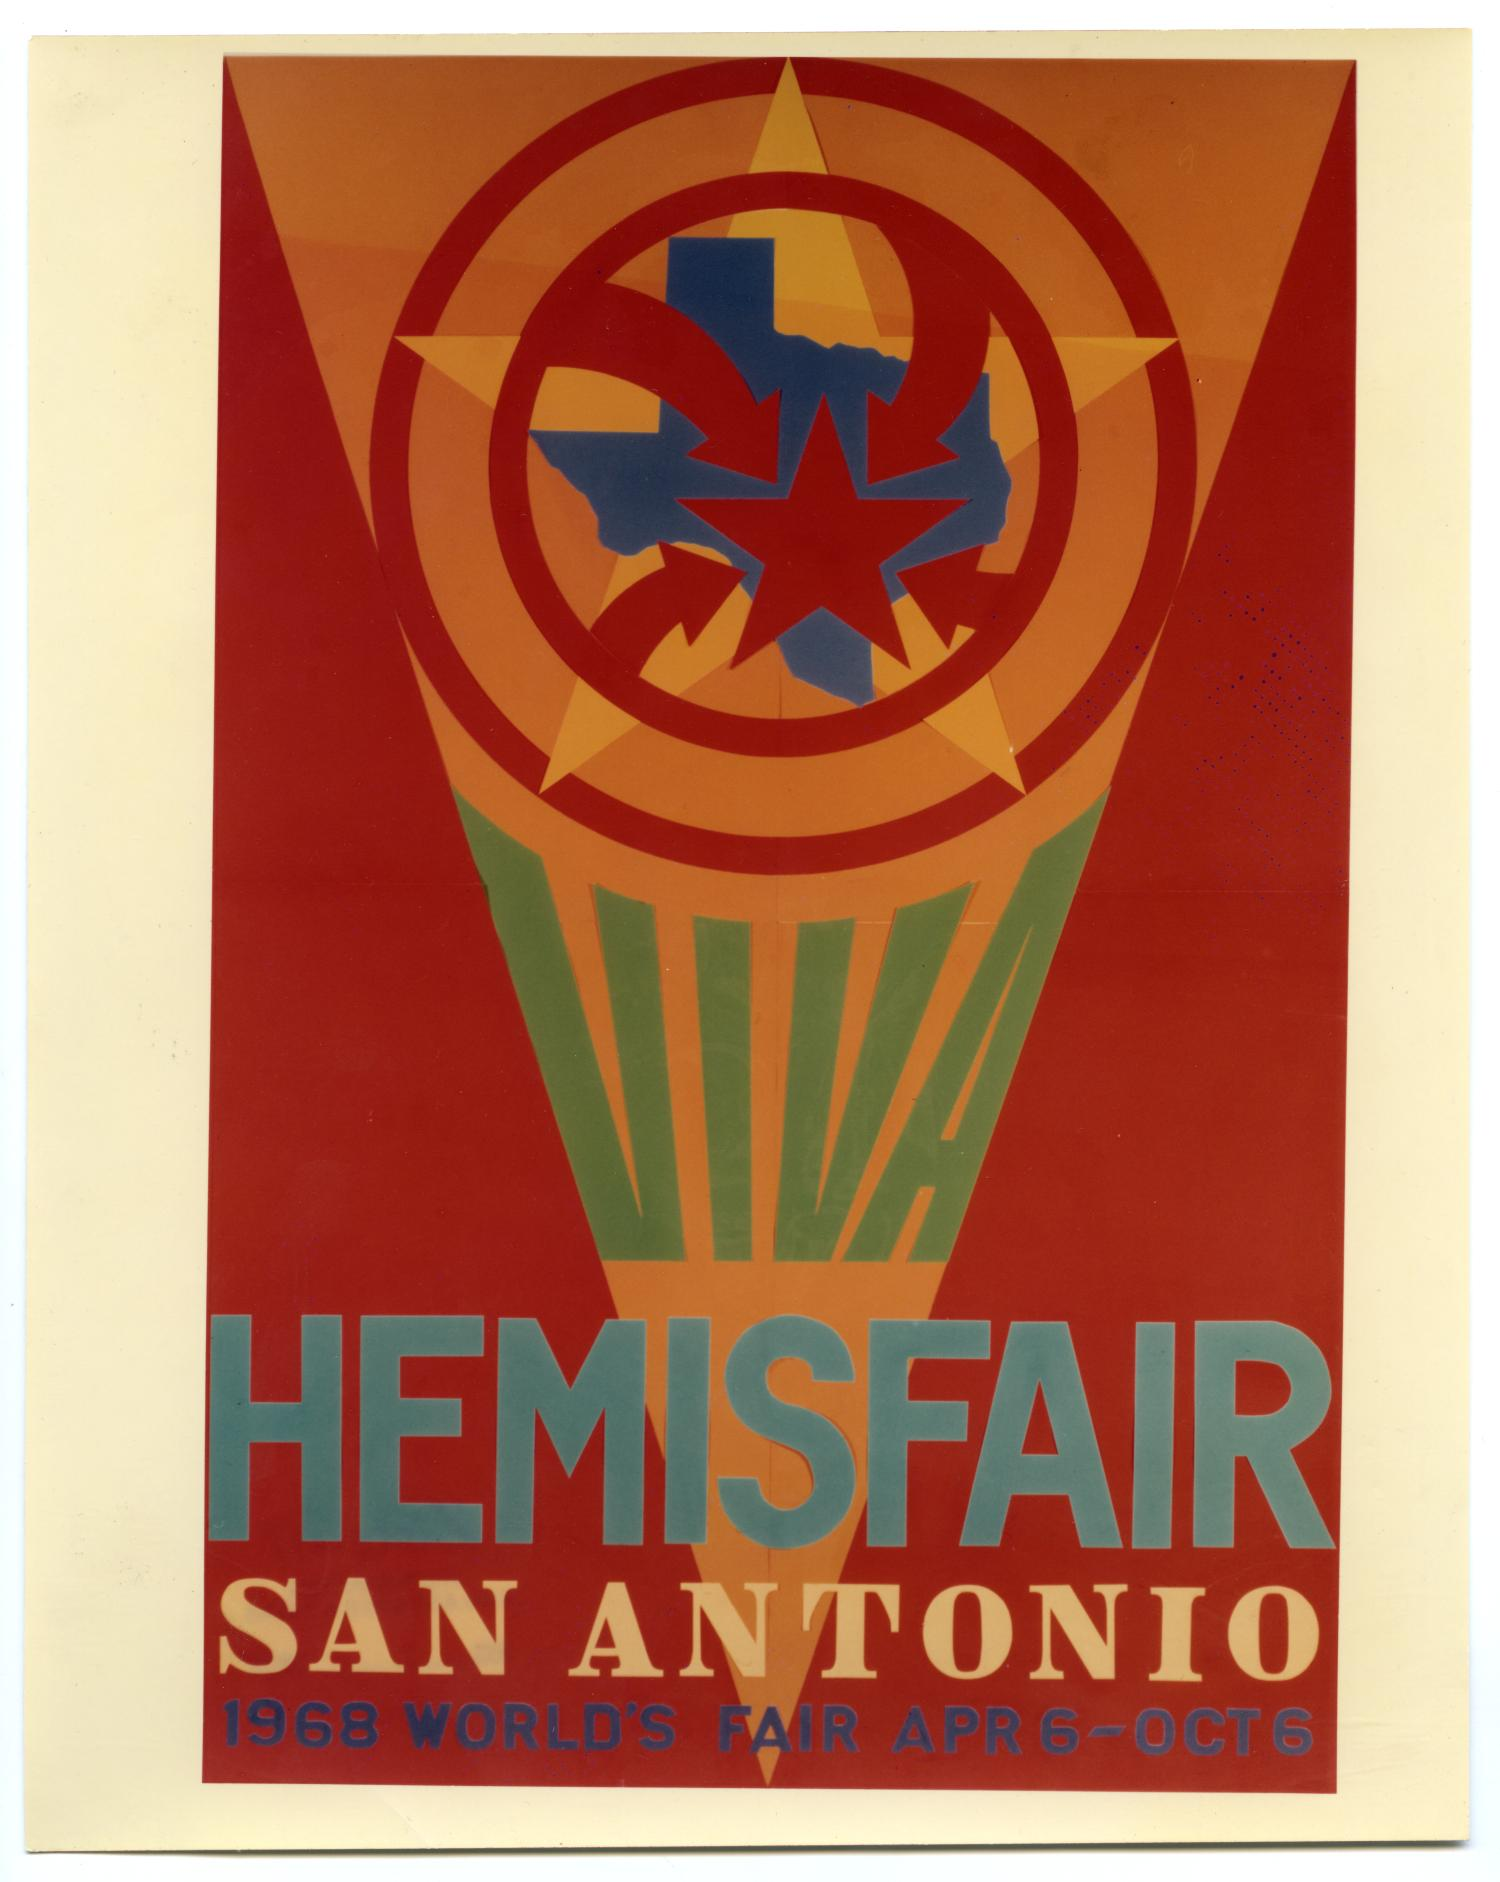 Viva hemisfair san antonio 1968 world 39 s fair color poster for 66180 1